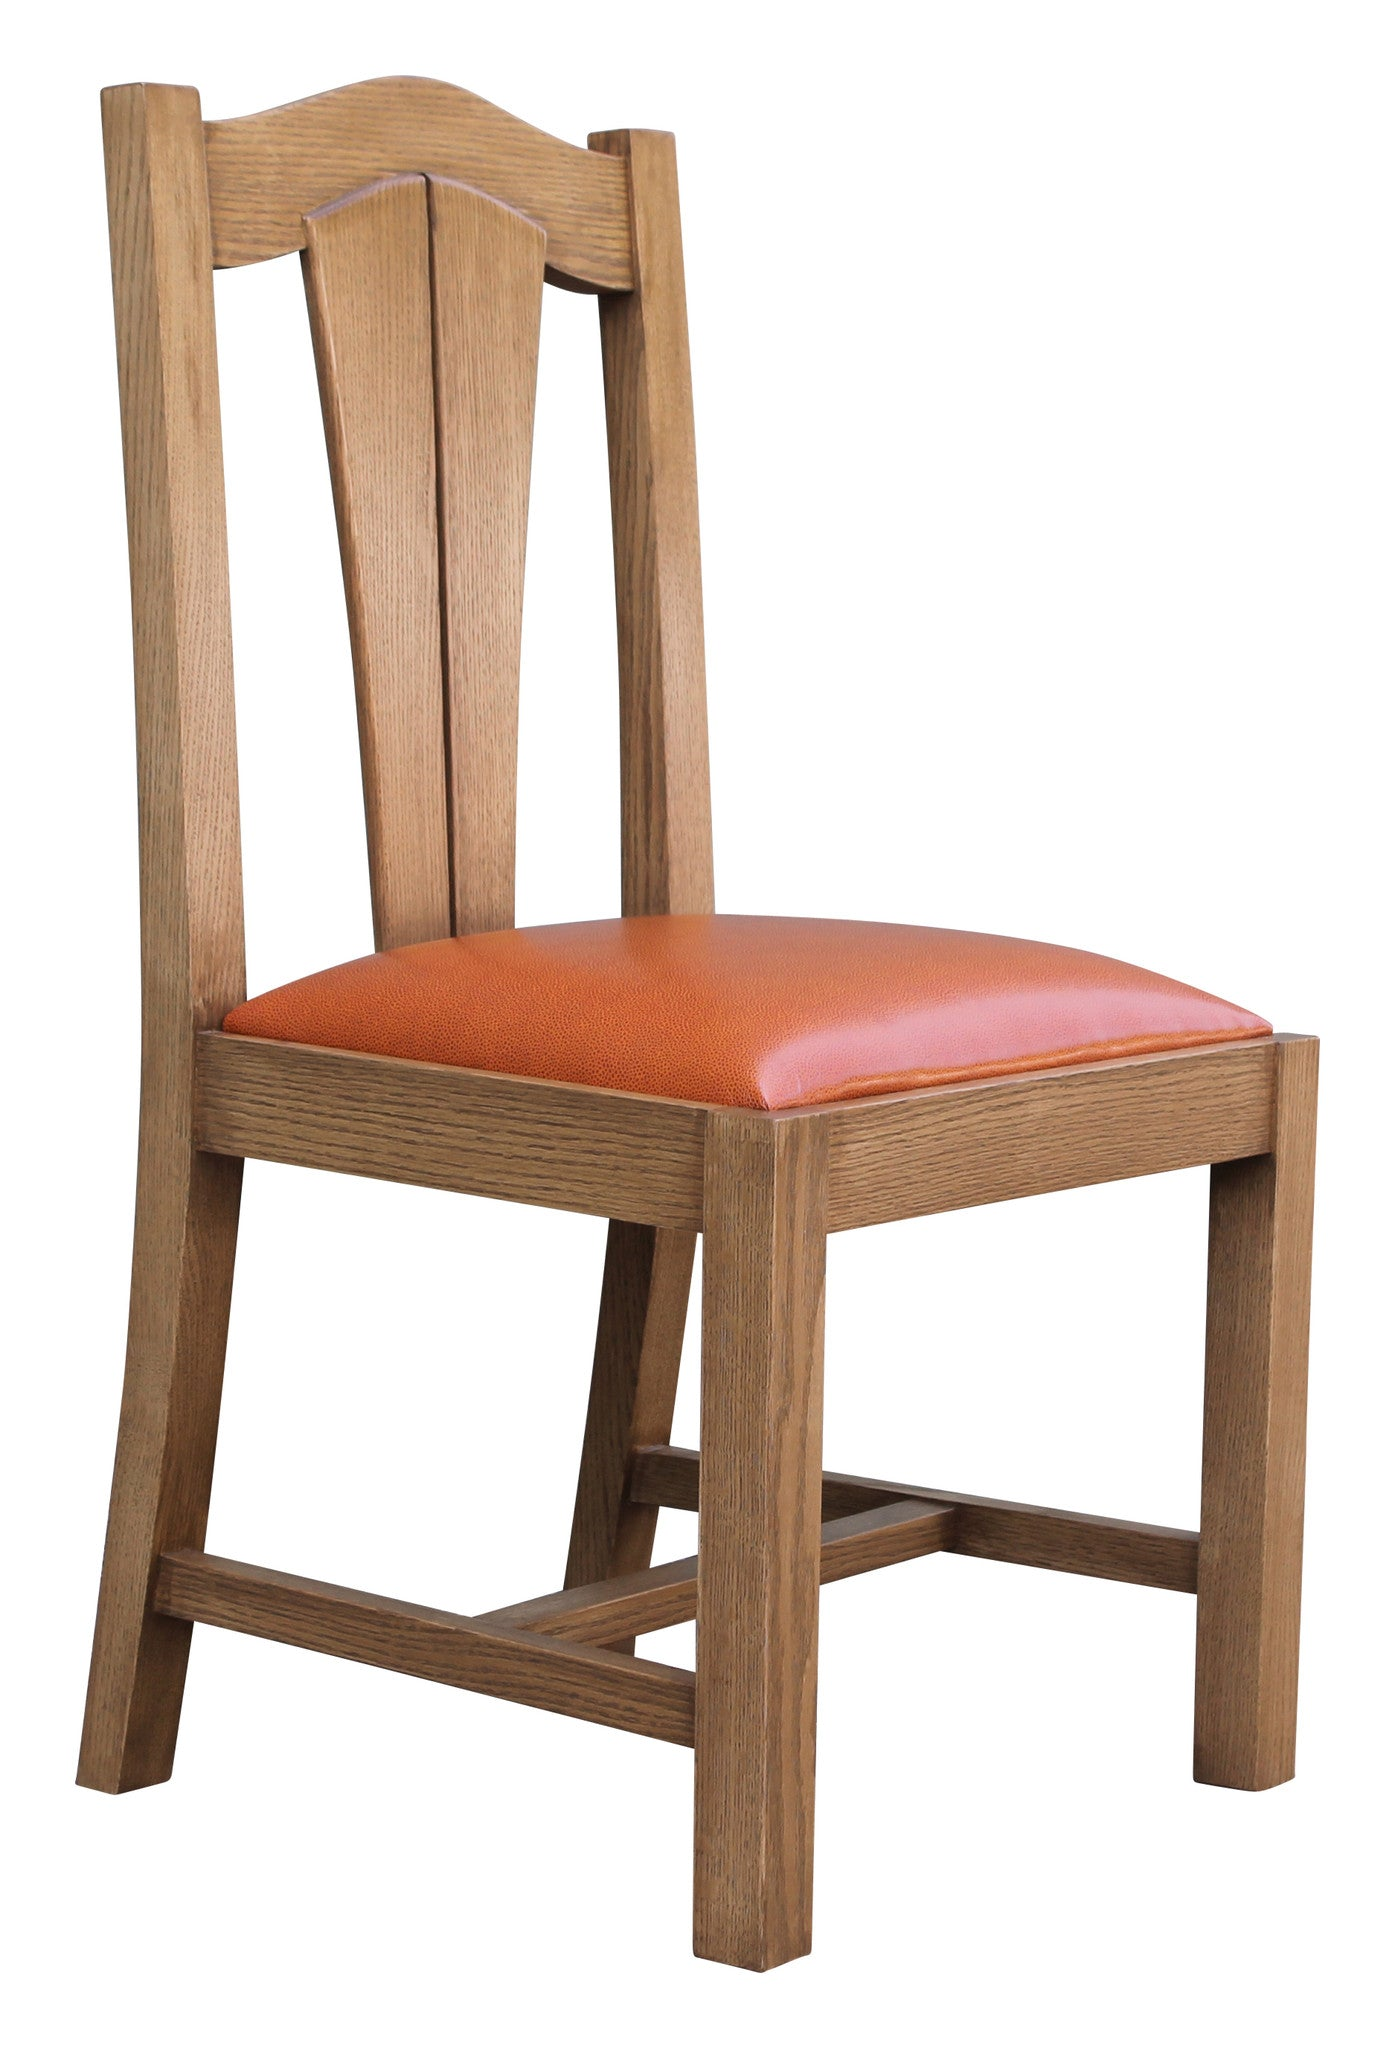 Oak Wood Mission Dining Chair – Mortise & Tenon